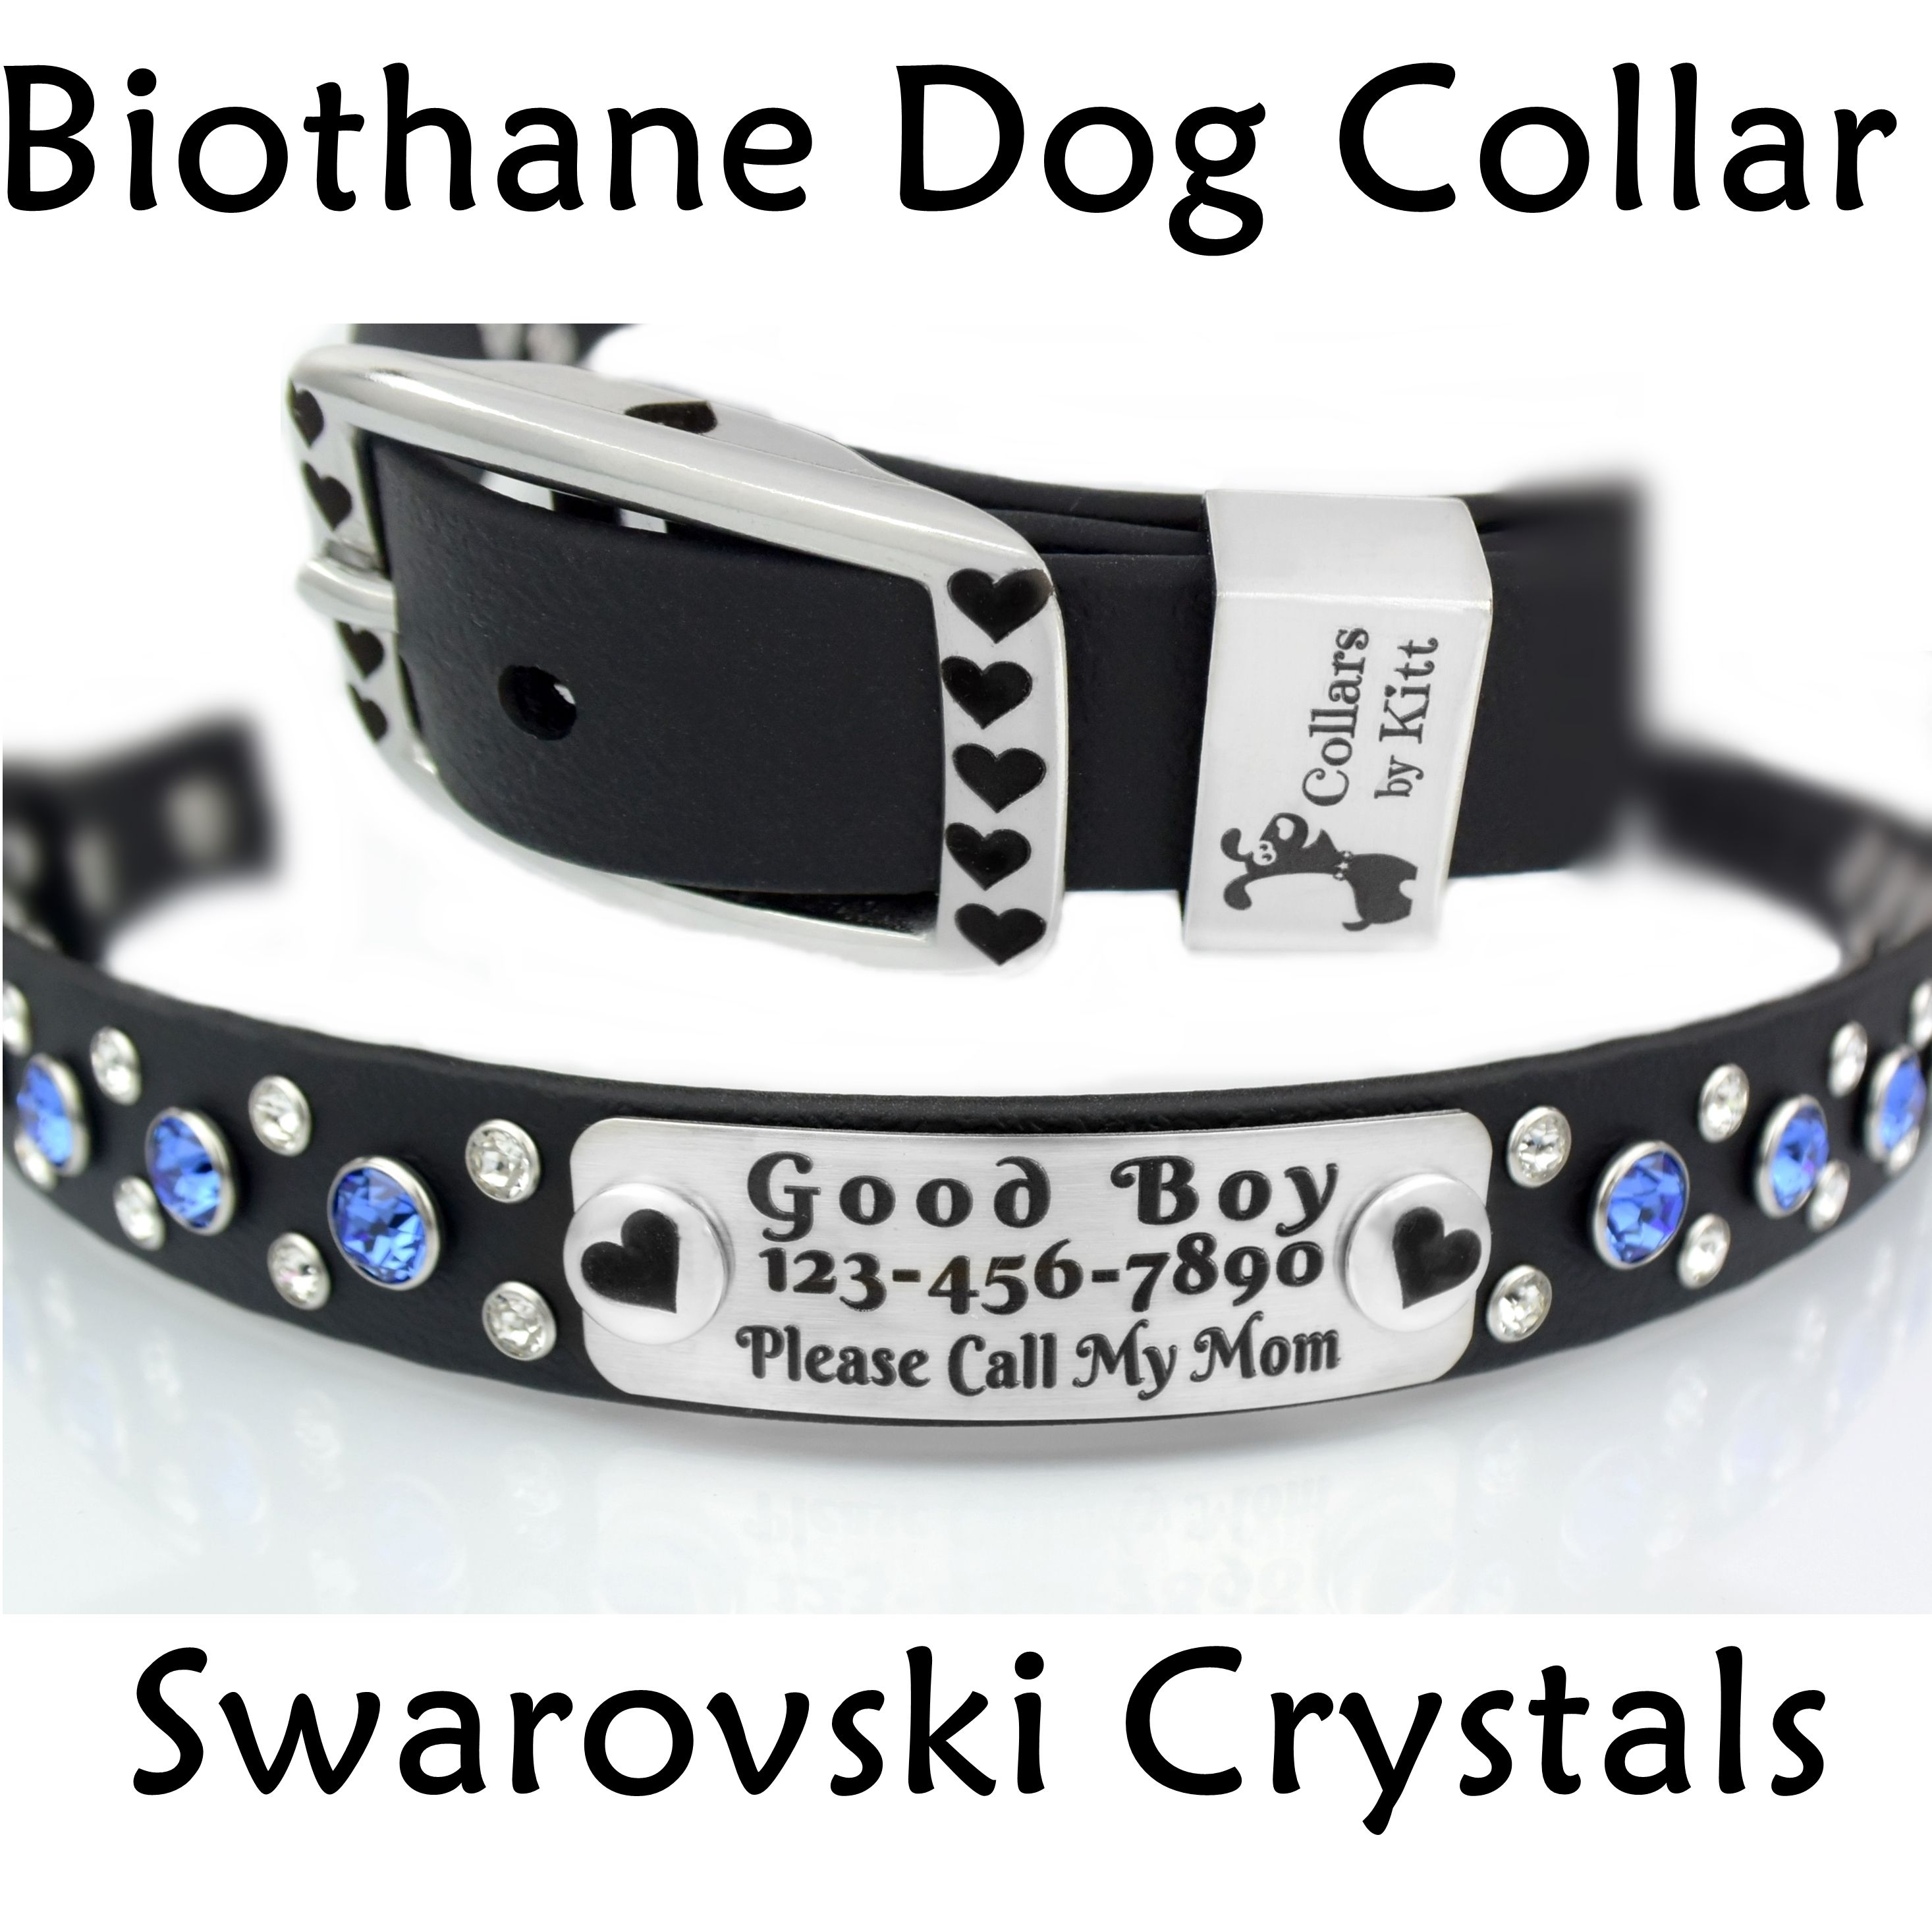 Biothane Dog Collar Crafted With Swarovski Crystals And Stainless